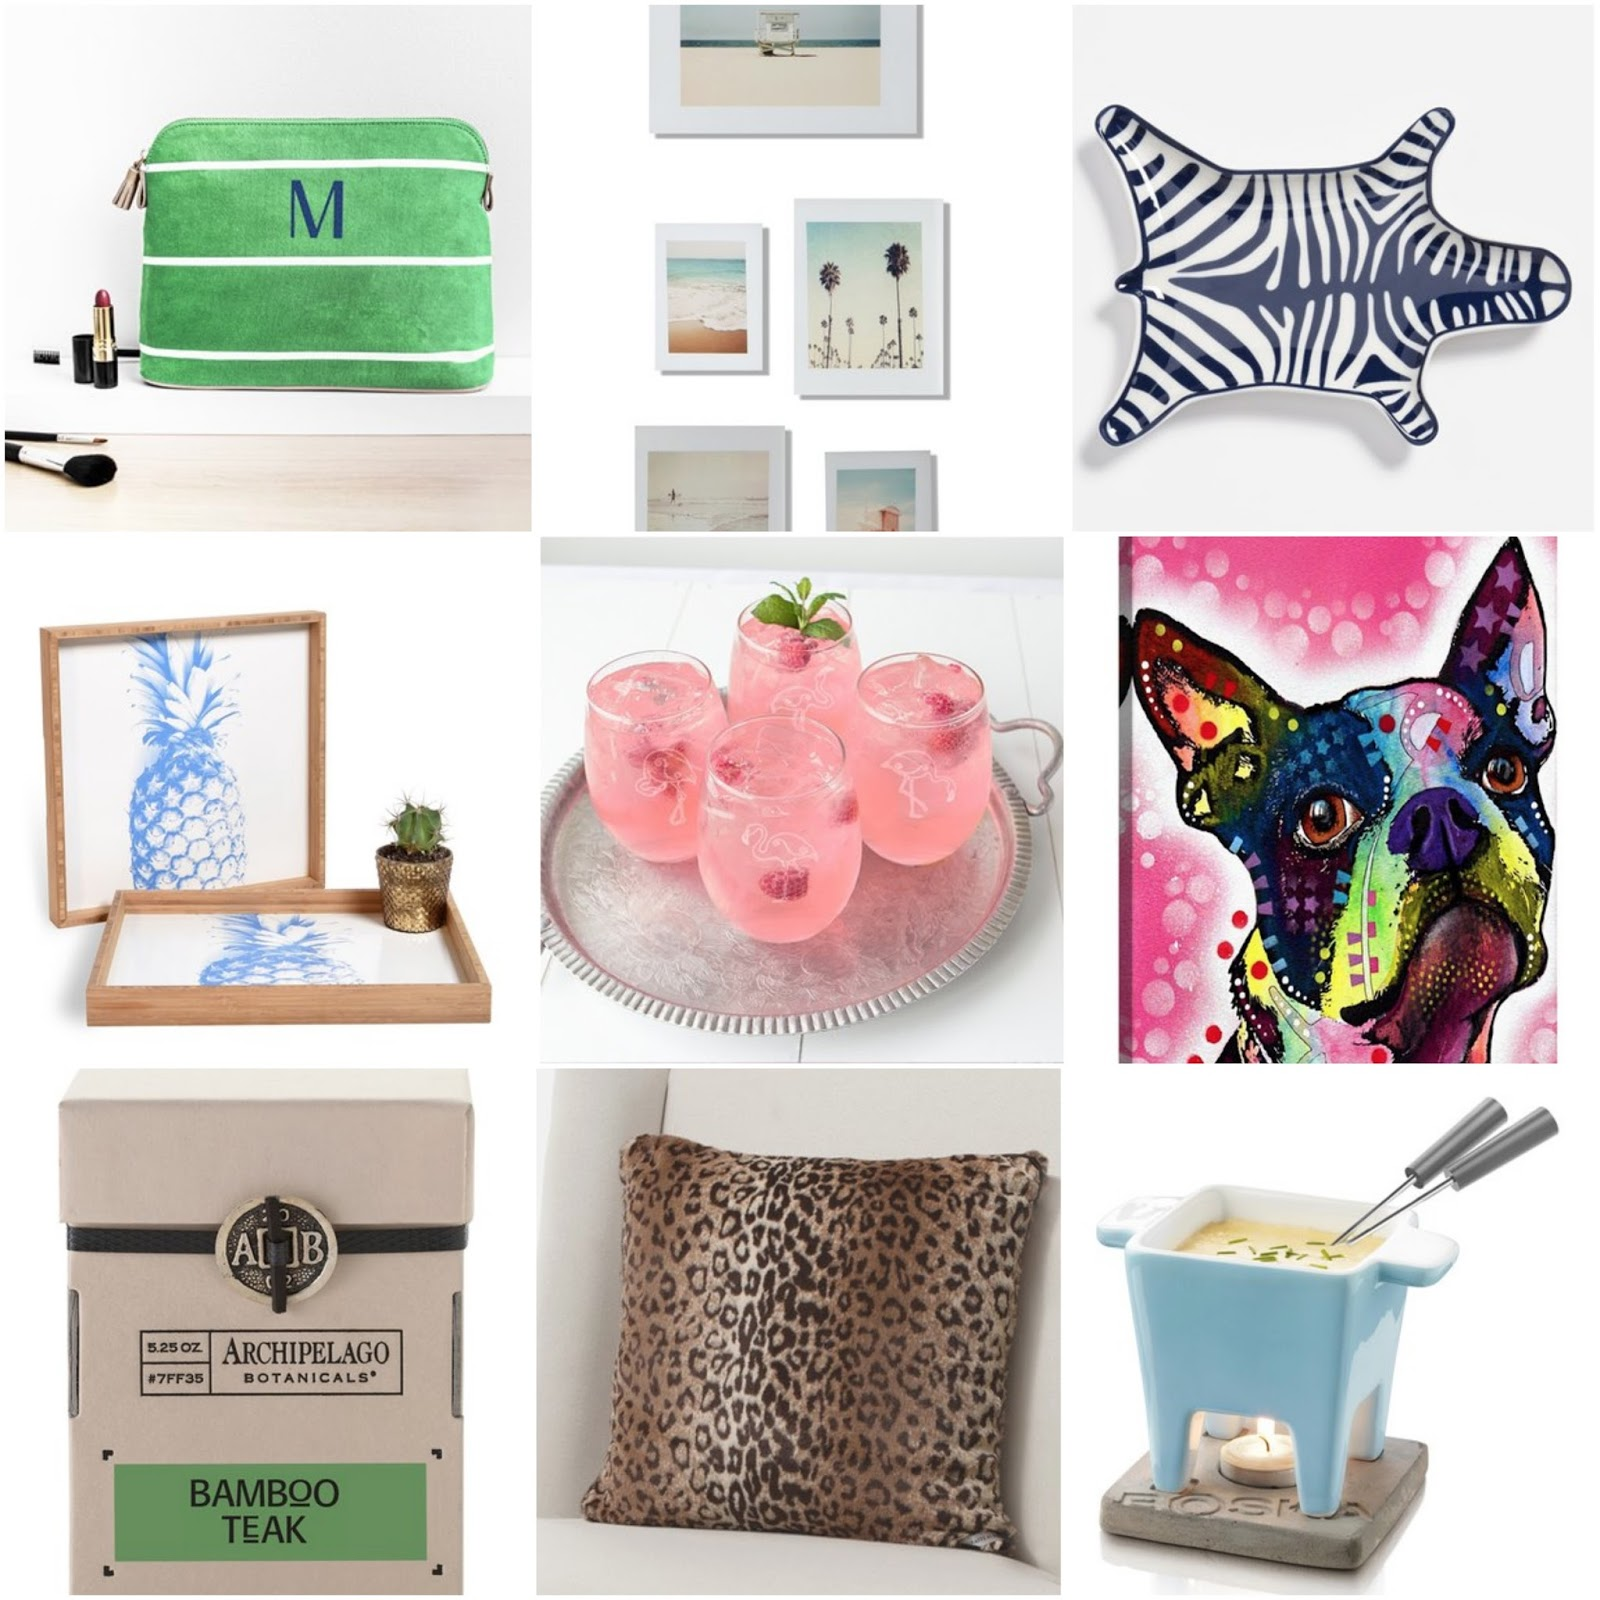 Small town sisters nordstrom anniversary sale home decor Nordstrom home decor sale